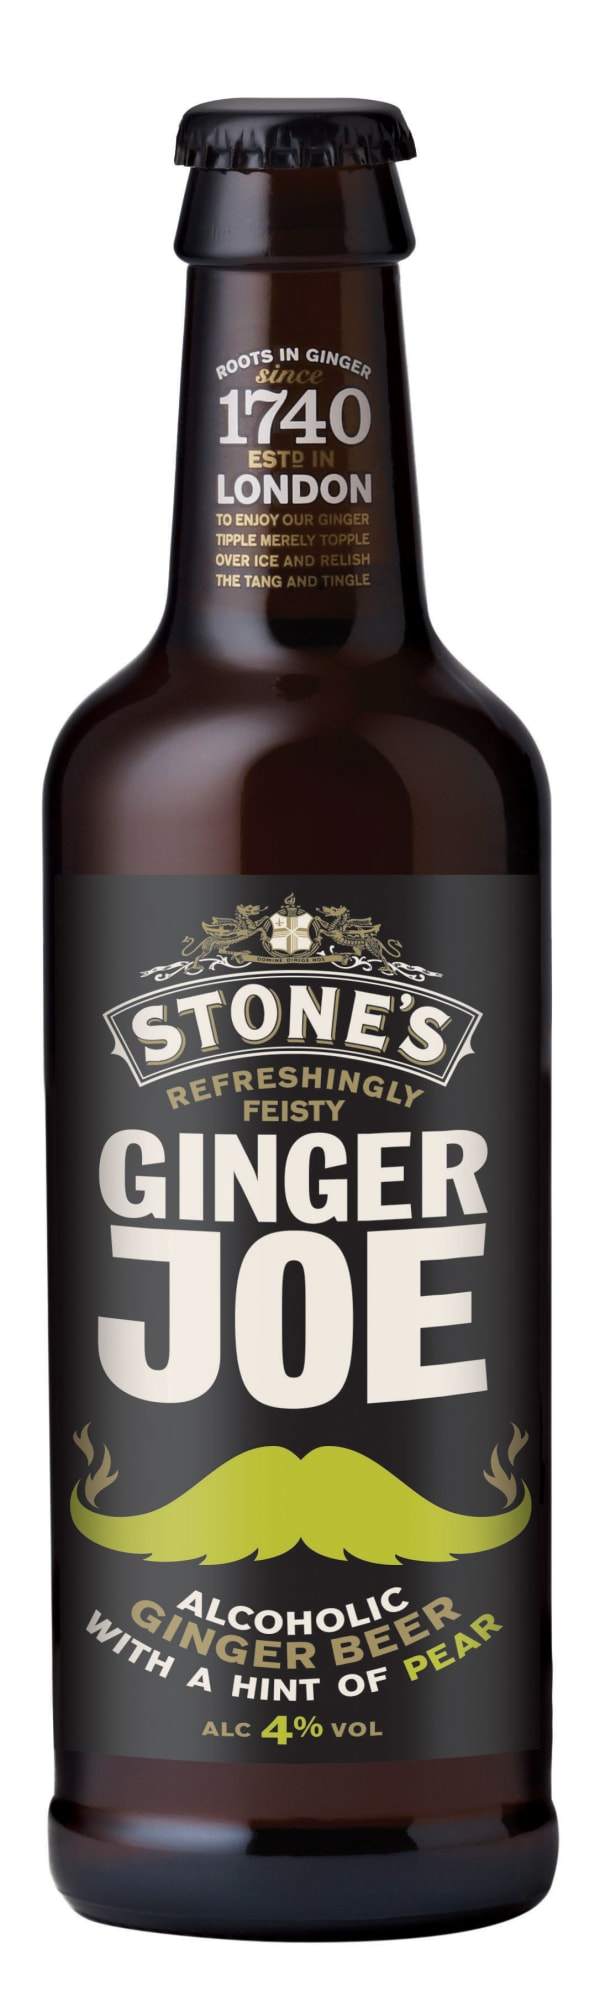 Stone's Ginger Joe Pear